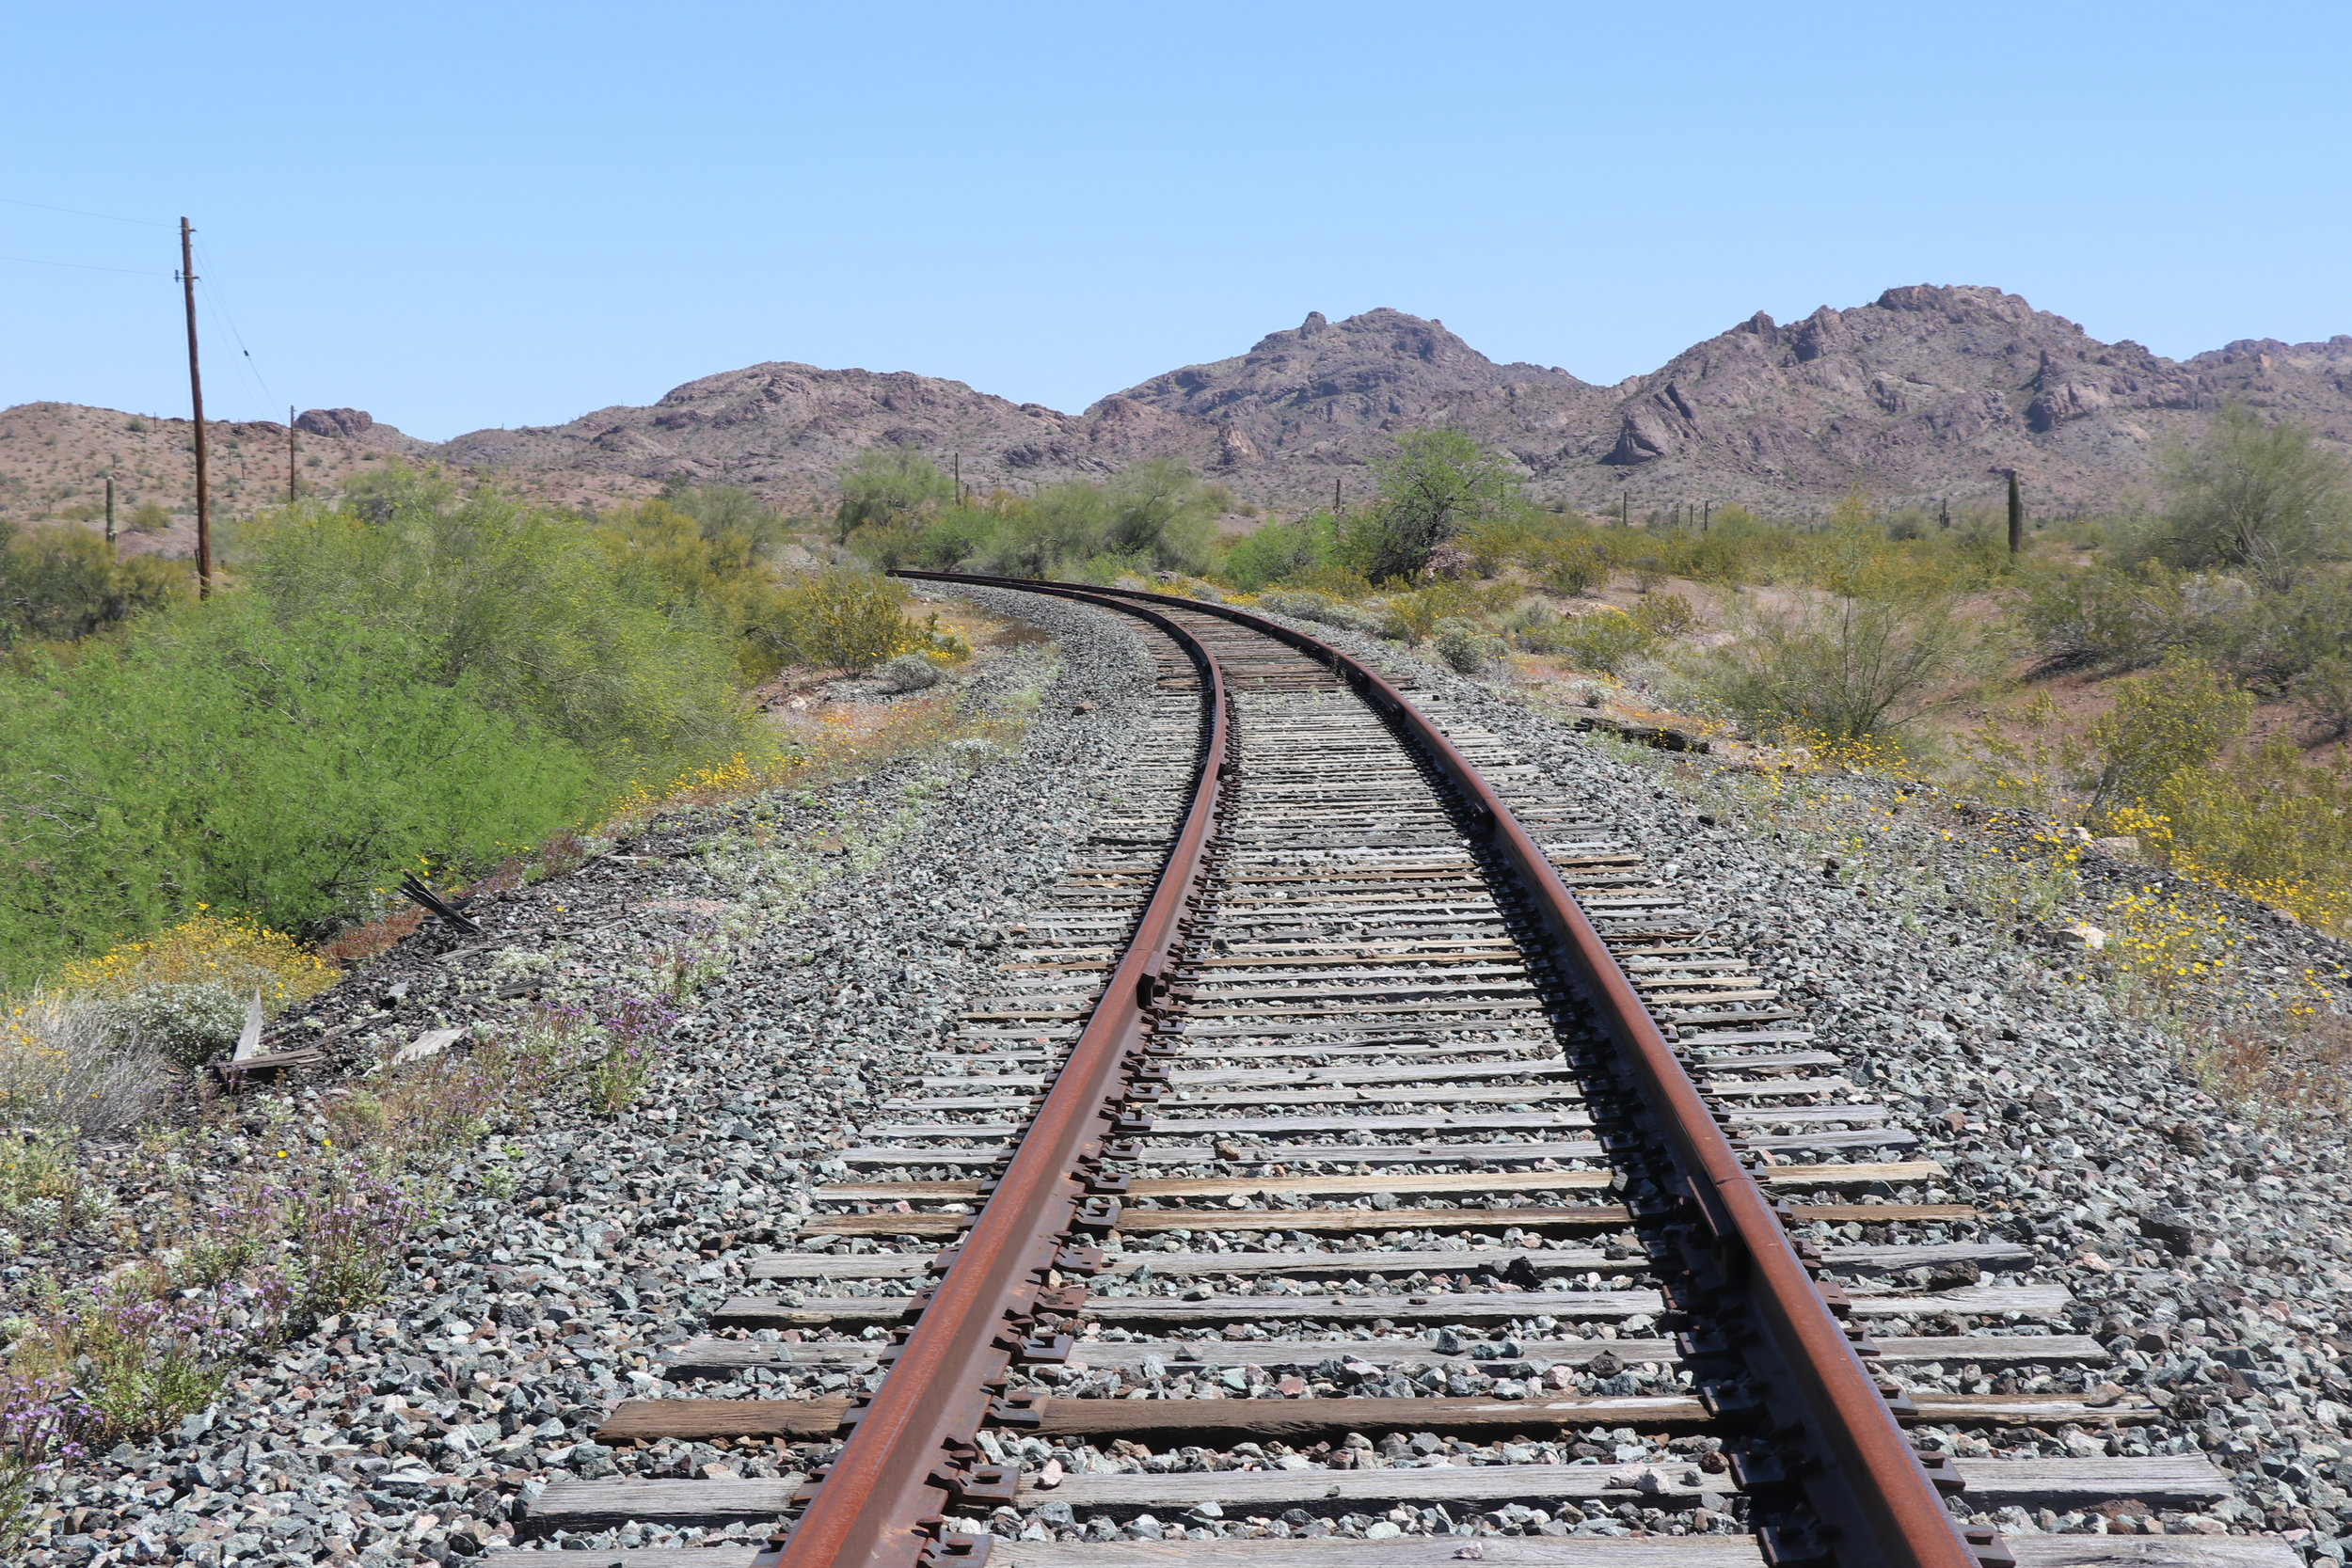 The train approached from this curve to the east.